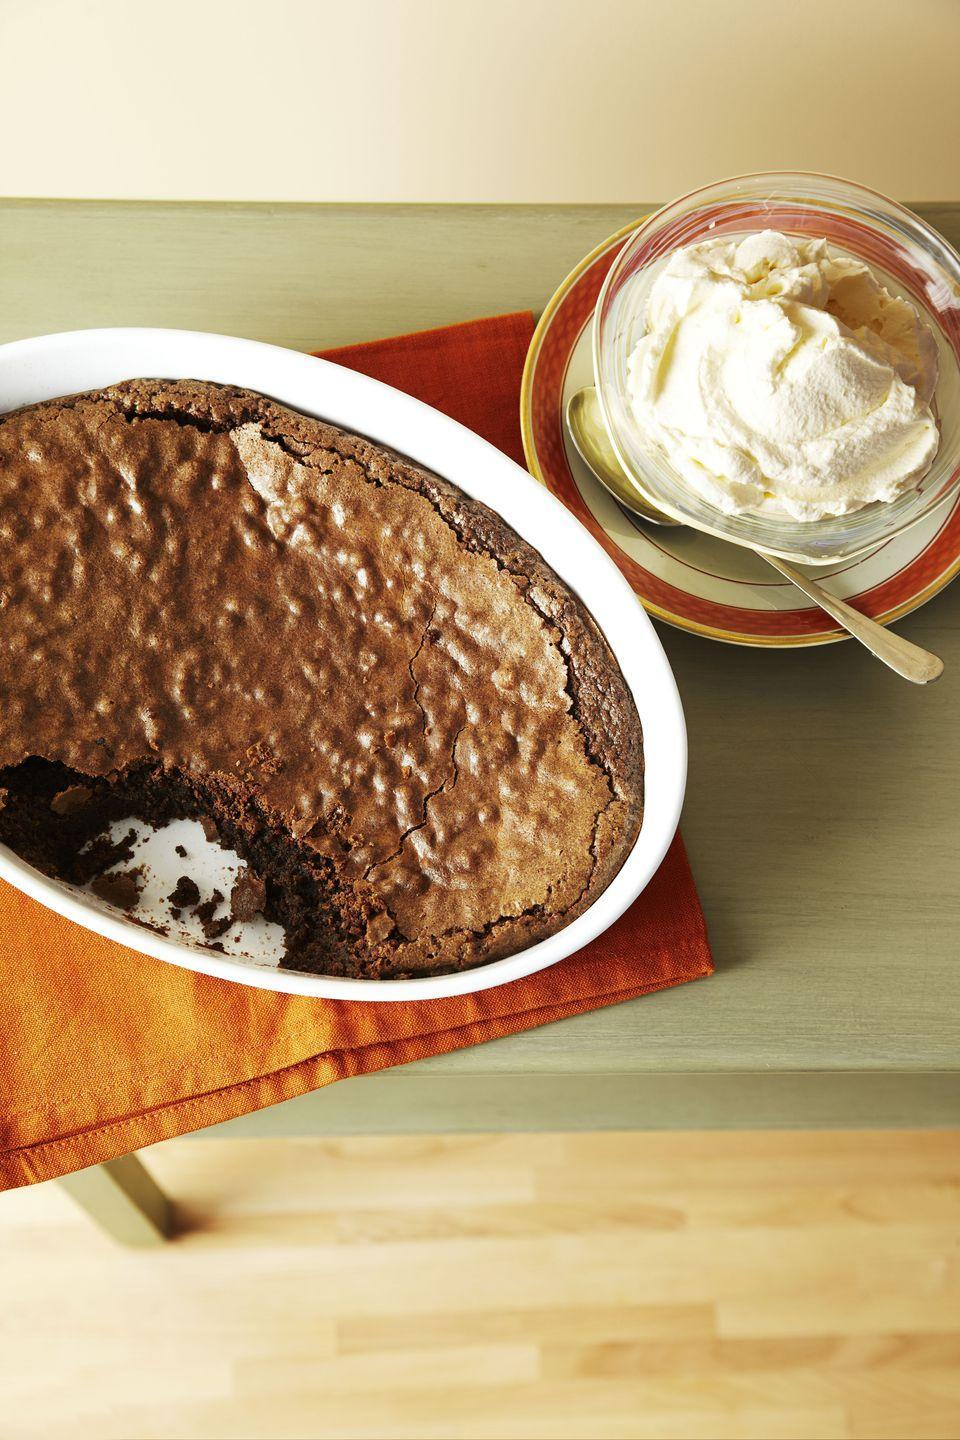 """<p>This one's for all the chocolate lovers: A splash of framboise liqueur adds an elegant touch to Thanksgiving night's dessert.</p><p><em><a href=""""https://www.goodhousekeeping.com/food-recipes/a8707/baked-chocolate-pudding-recipe-ghk1111/"""" rel=""""nofollow noopener"""" target=""""_blank"""" data-ylk=""""slk:Get the recipe for Baked Chocolate Pudding »"""" class=""""link rapid-noclick-resp"""">Get the recipe for Baked Chocolate Pudding »</a></em></p>"""